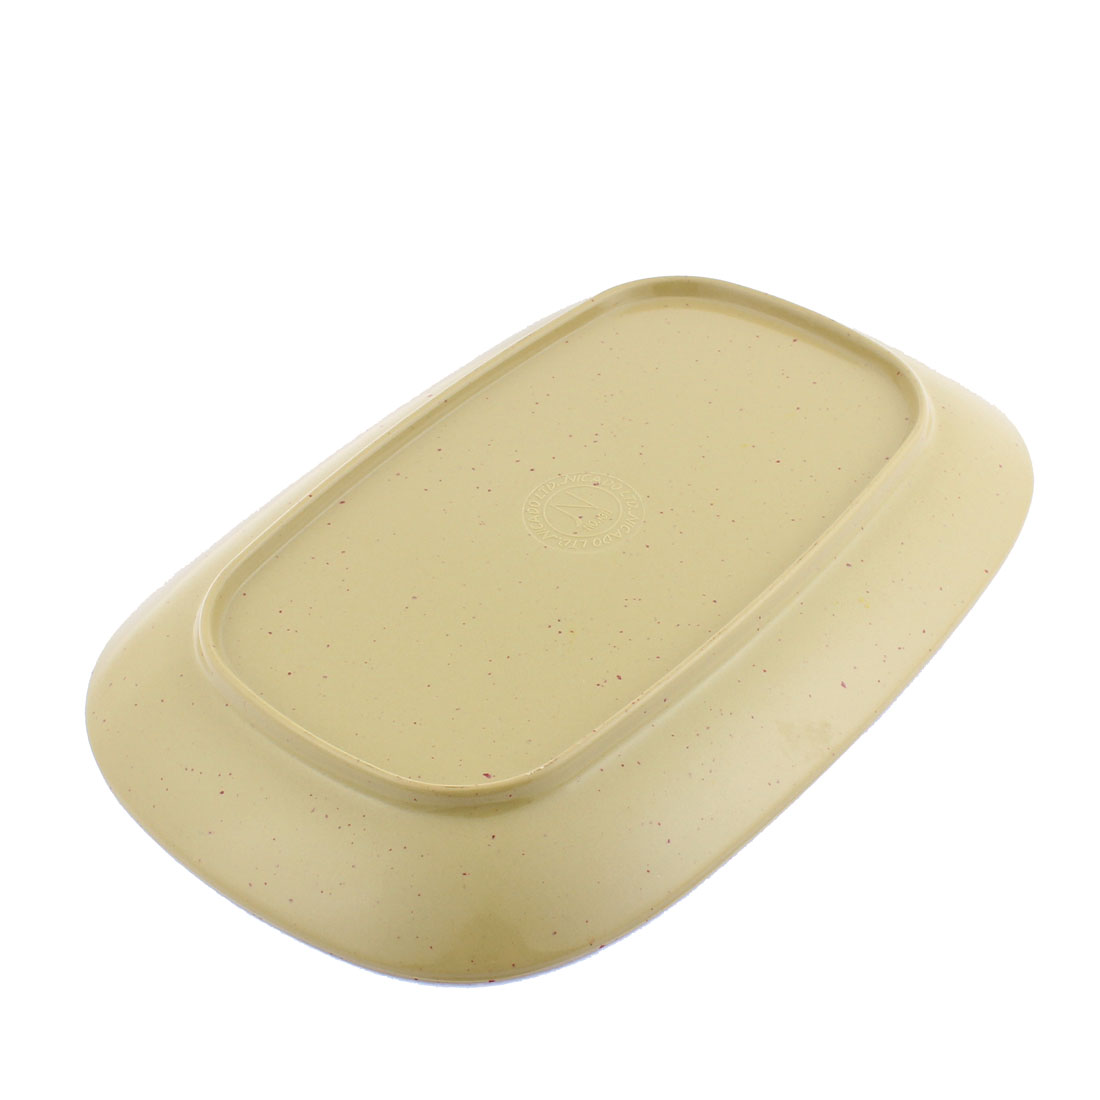 Unique Bargains Rectangle Shaped Character Pattern Lunch Food Dish Plate Olive Green - image 1 de 2